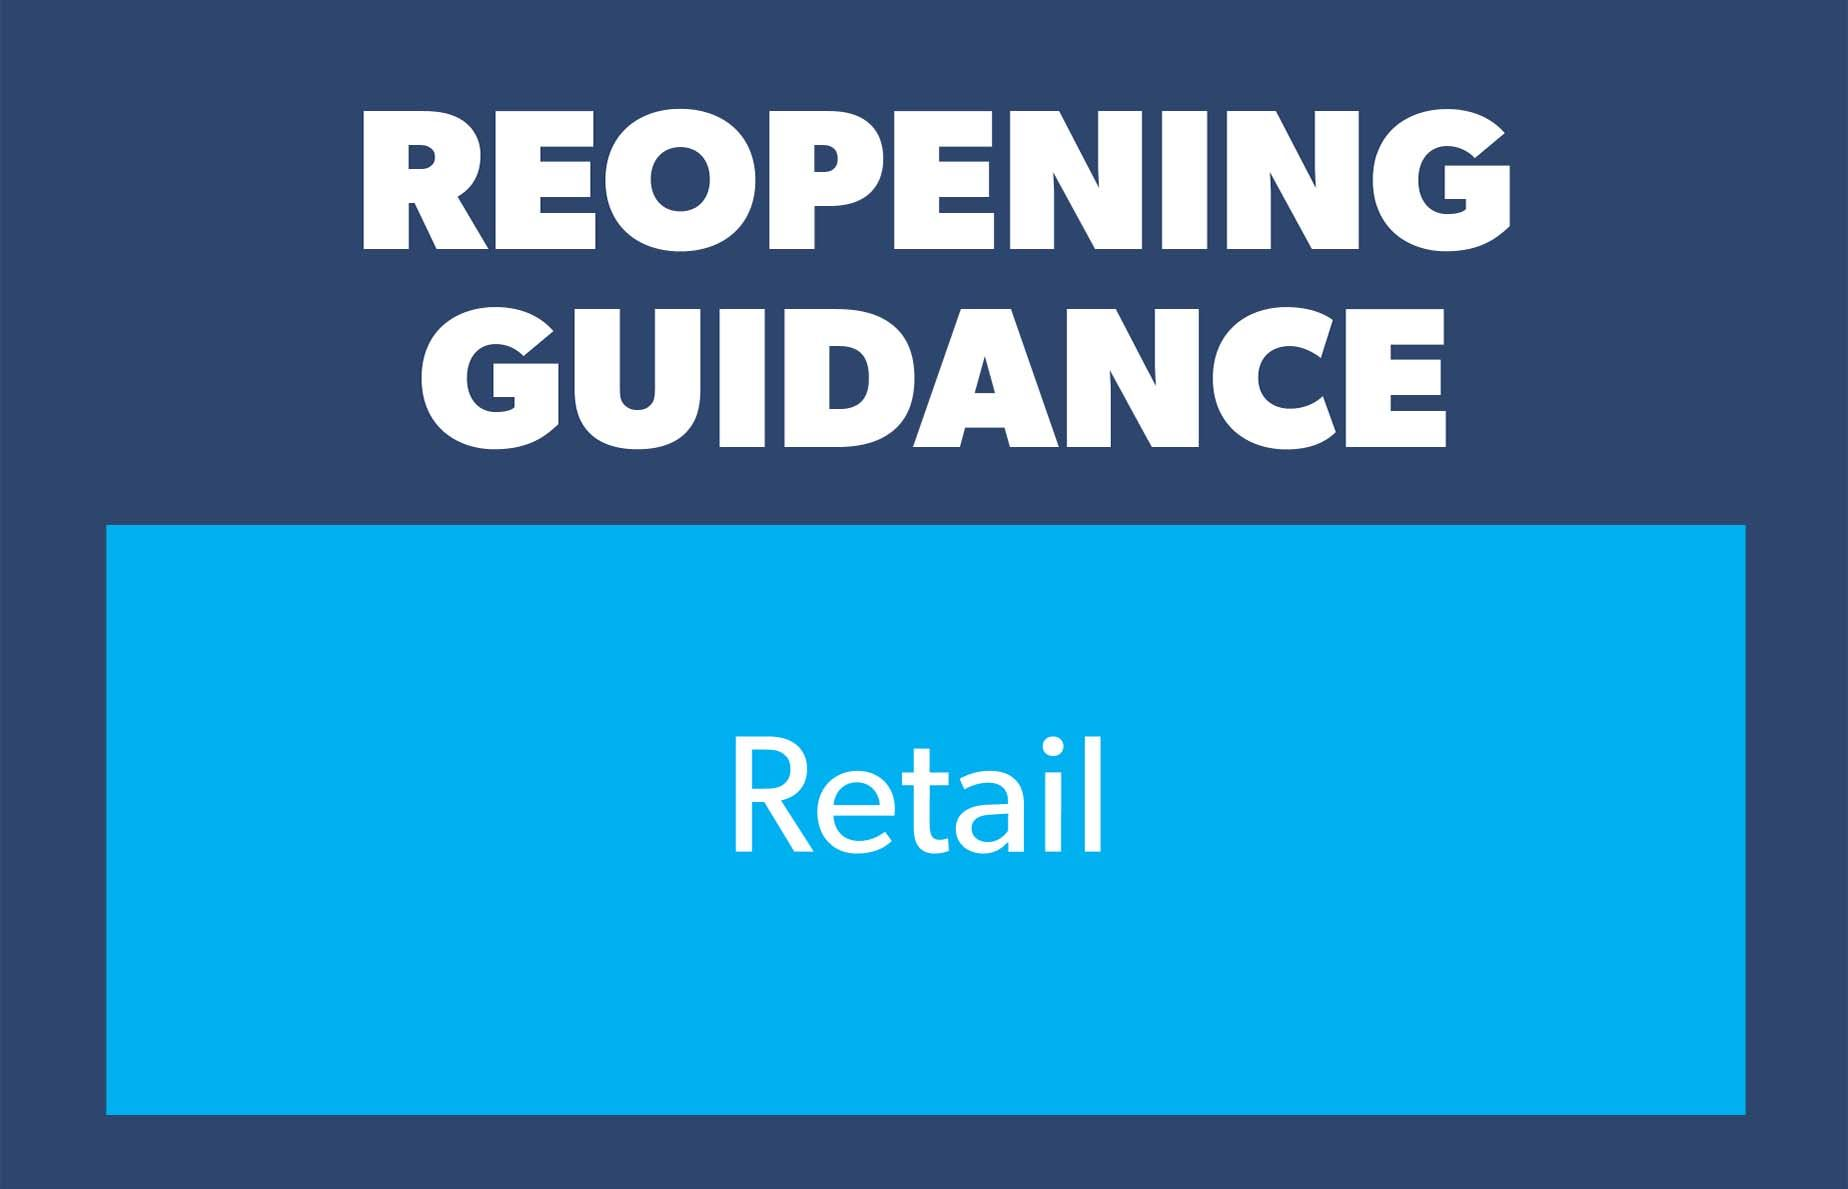 Guidance retail